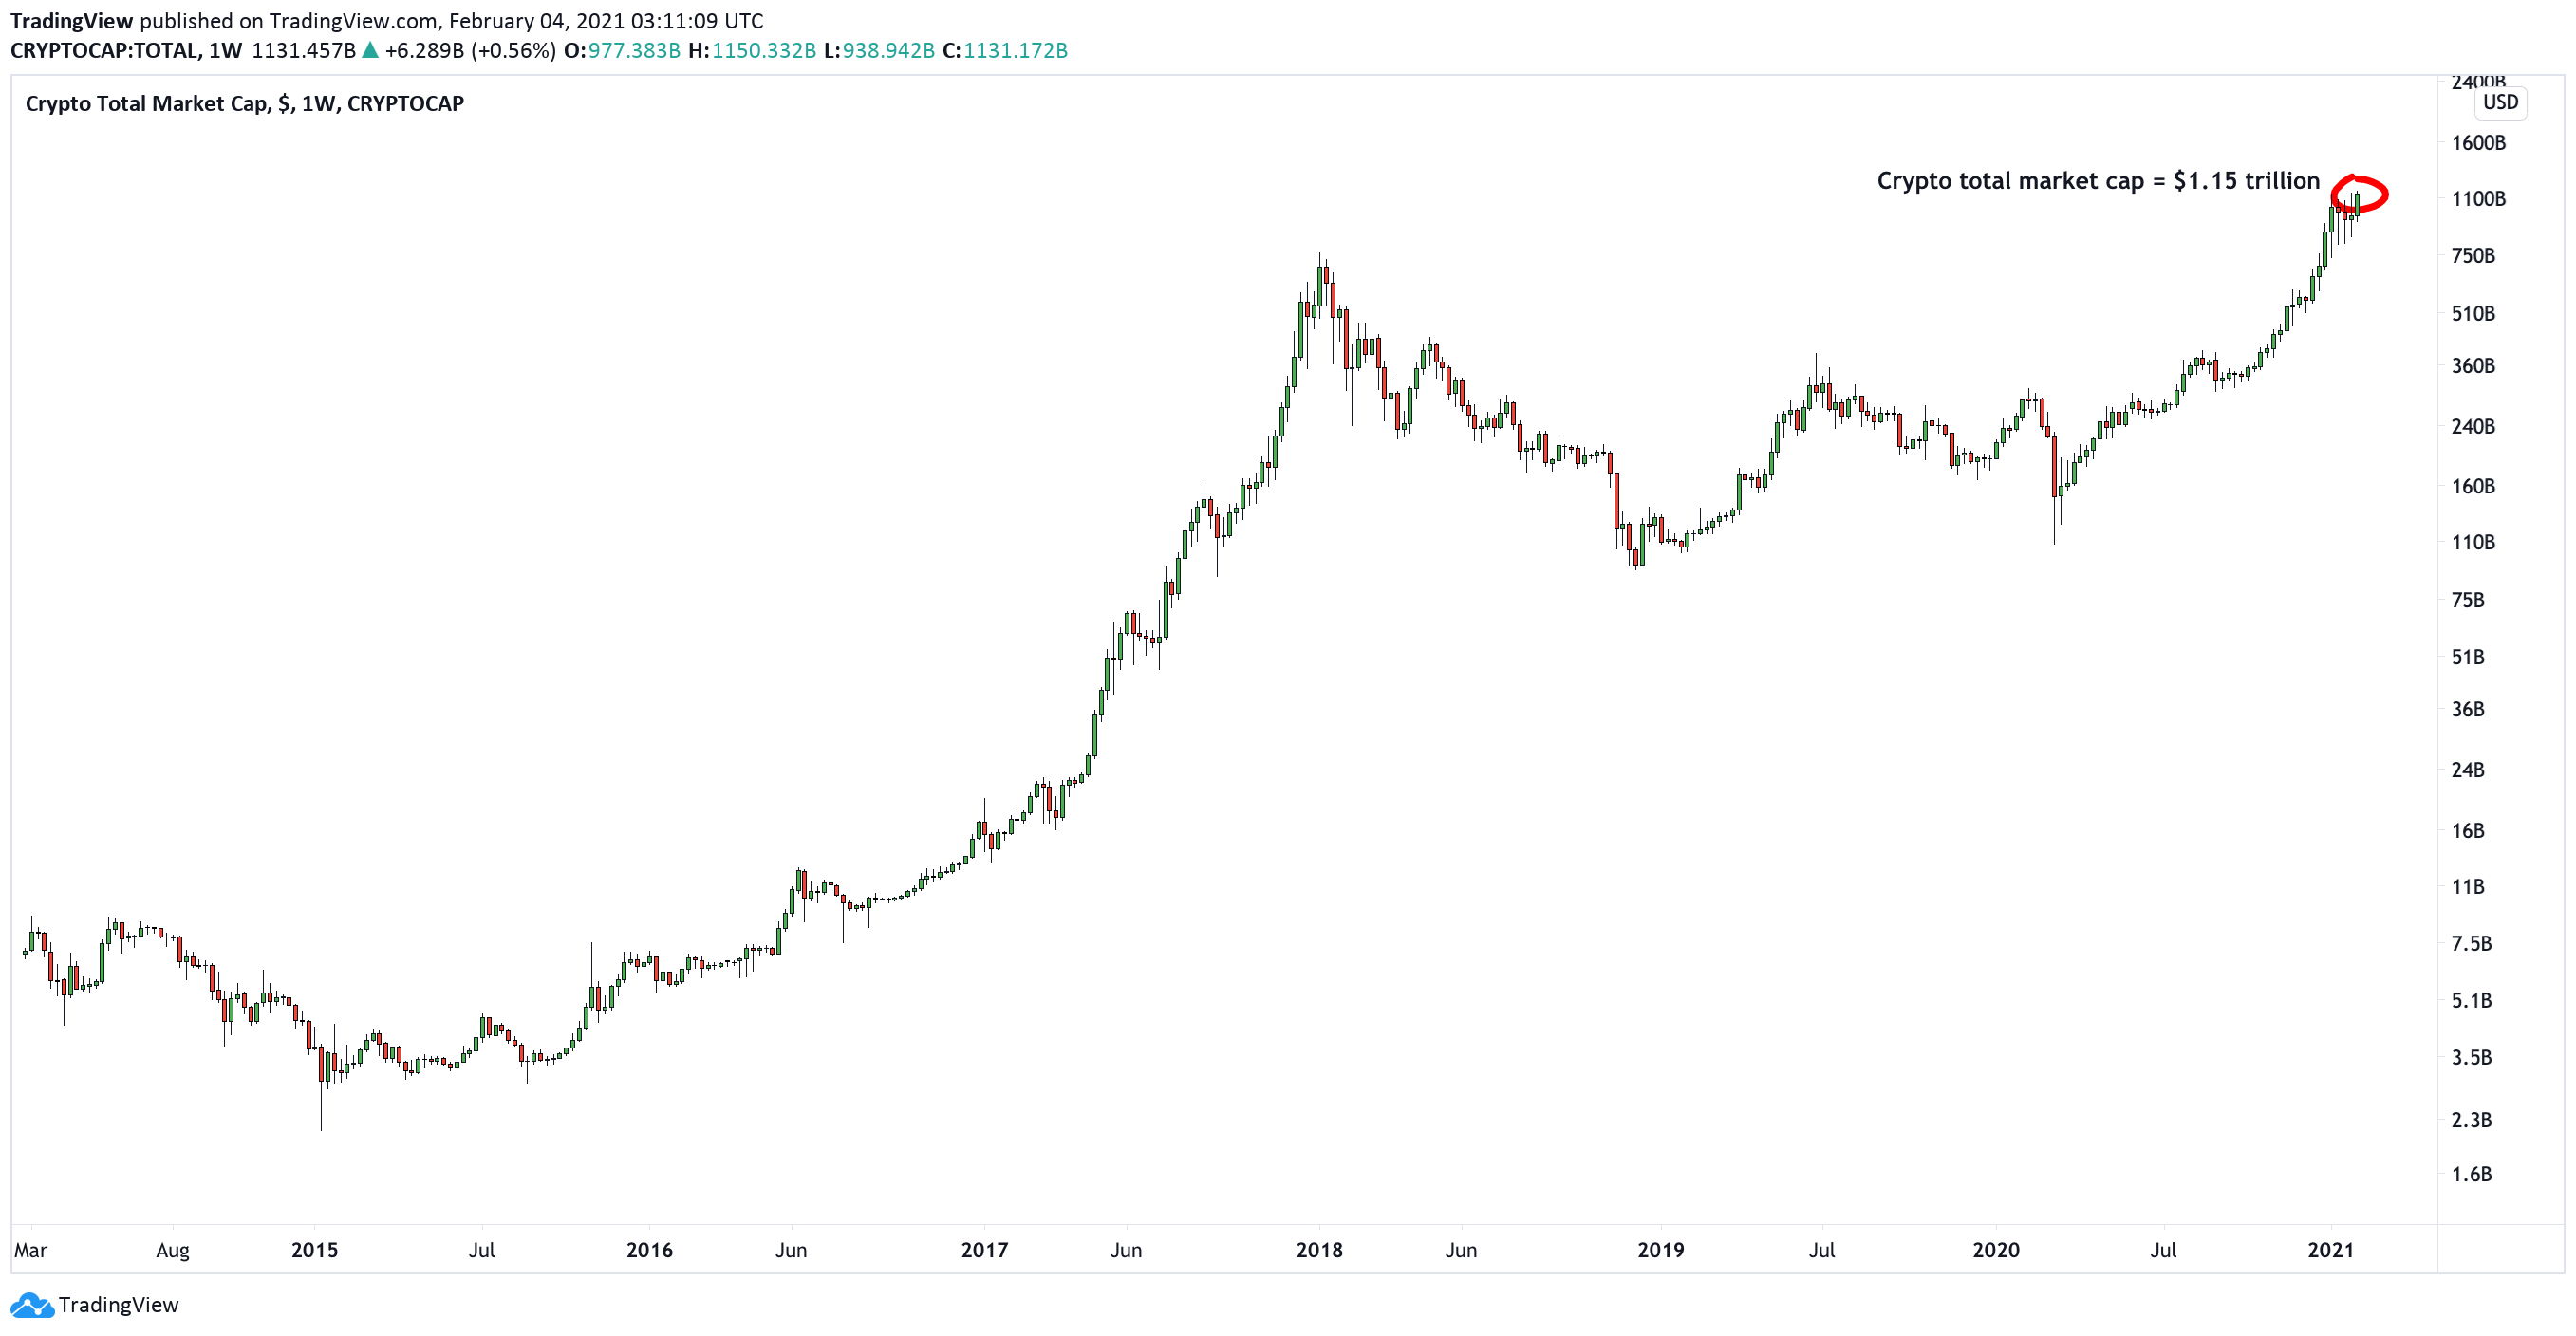 Crypto just reached a new all-time high market cap